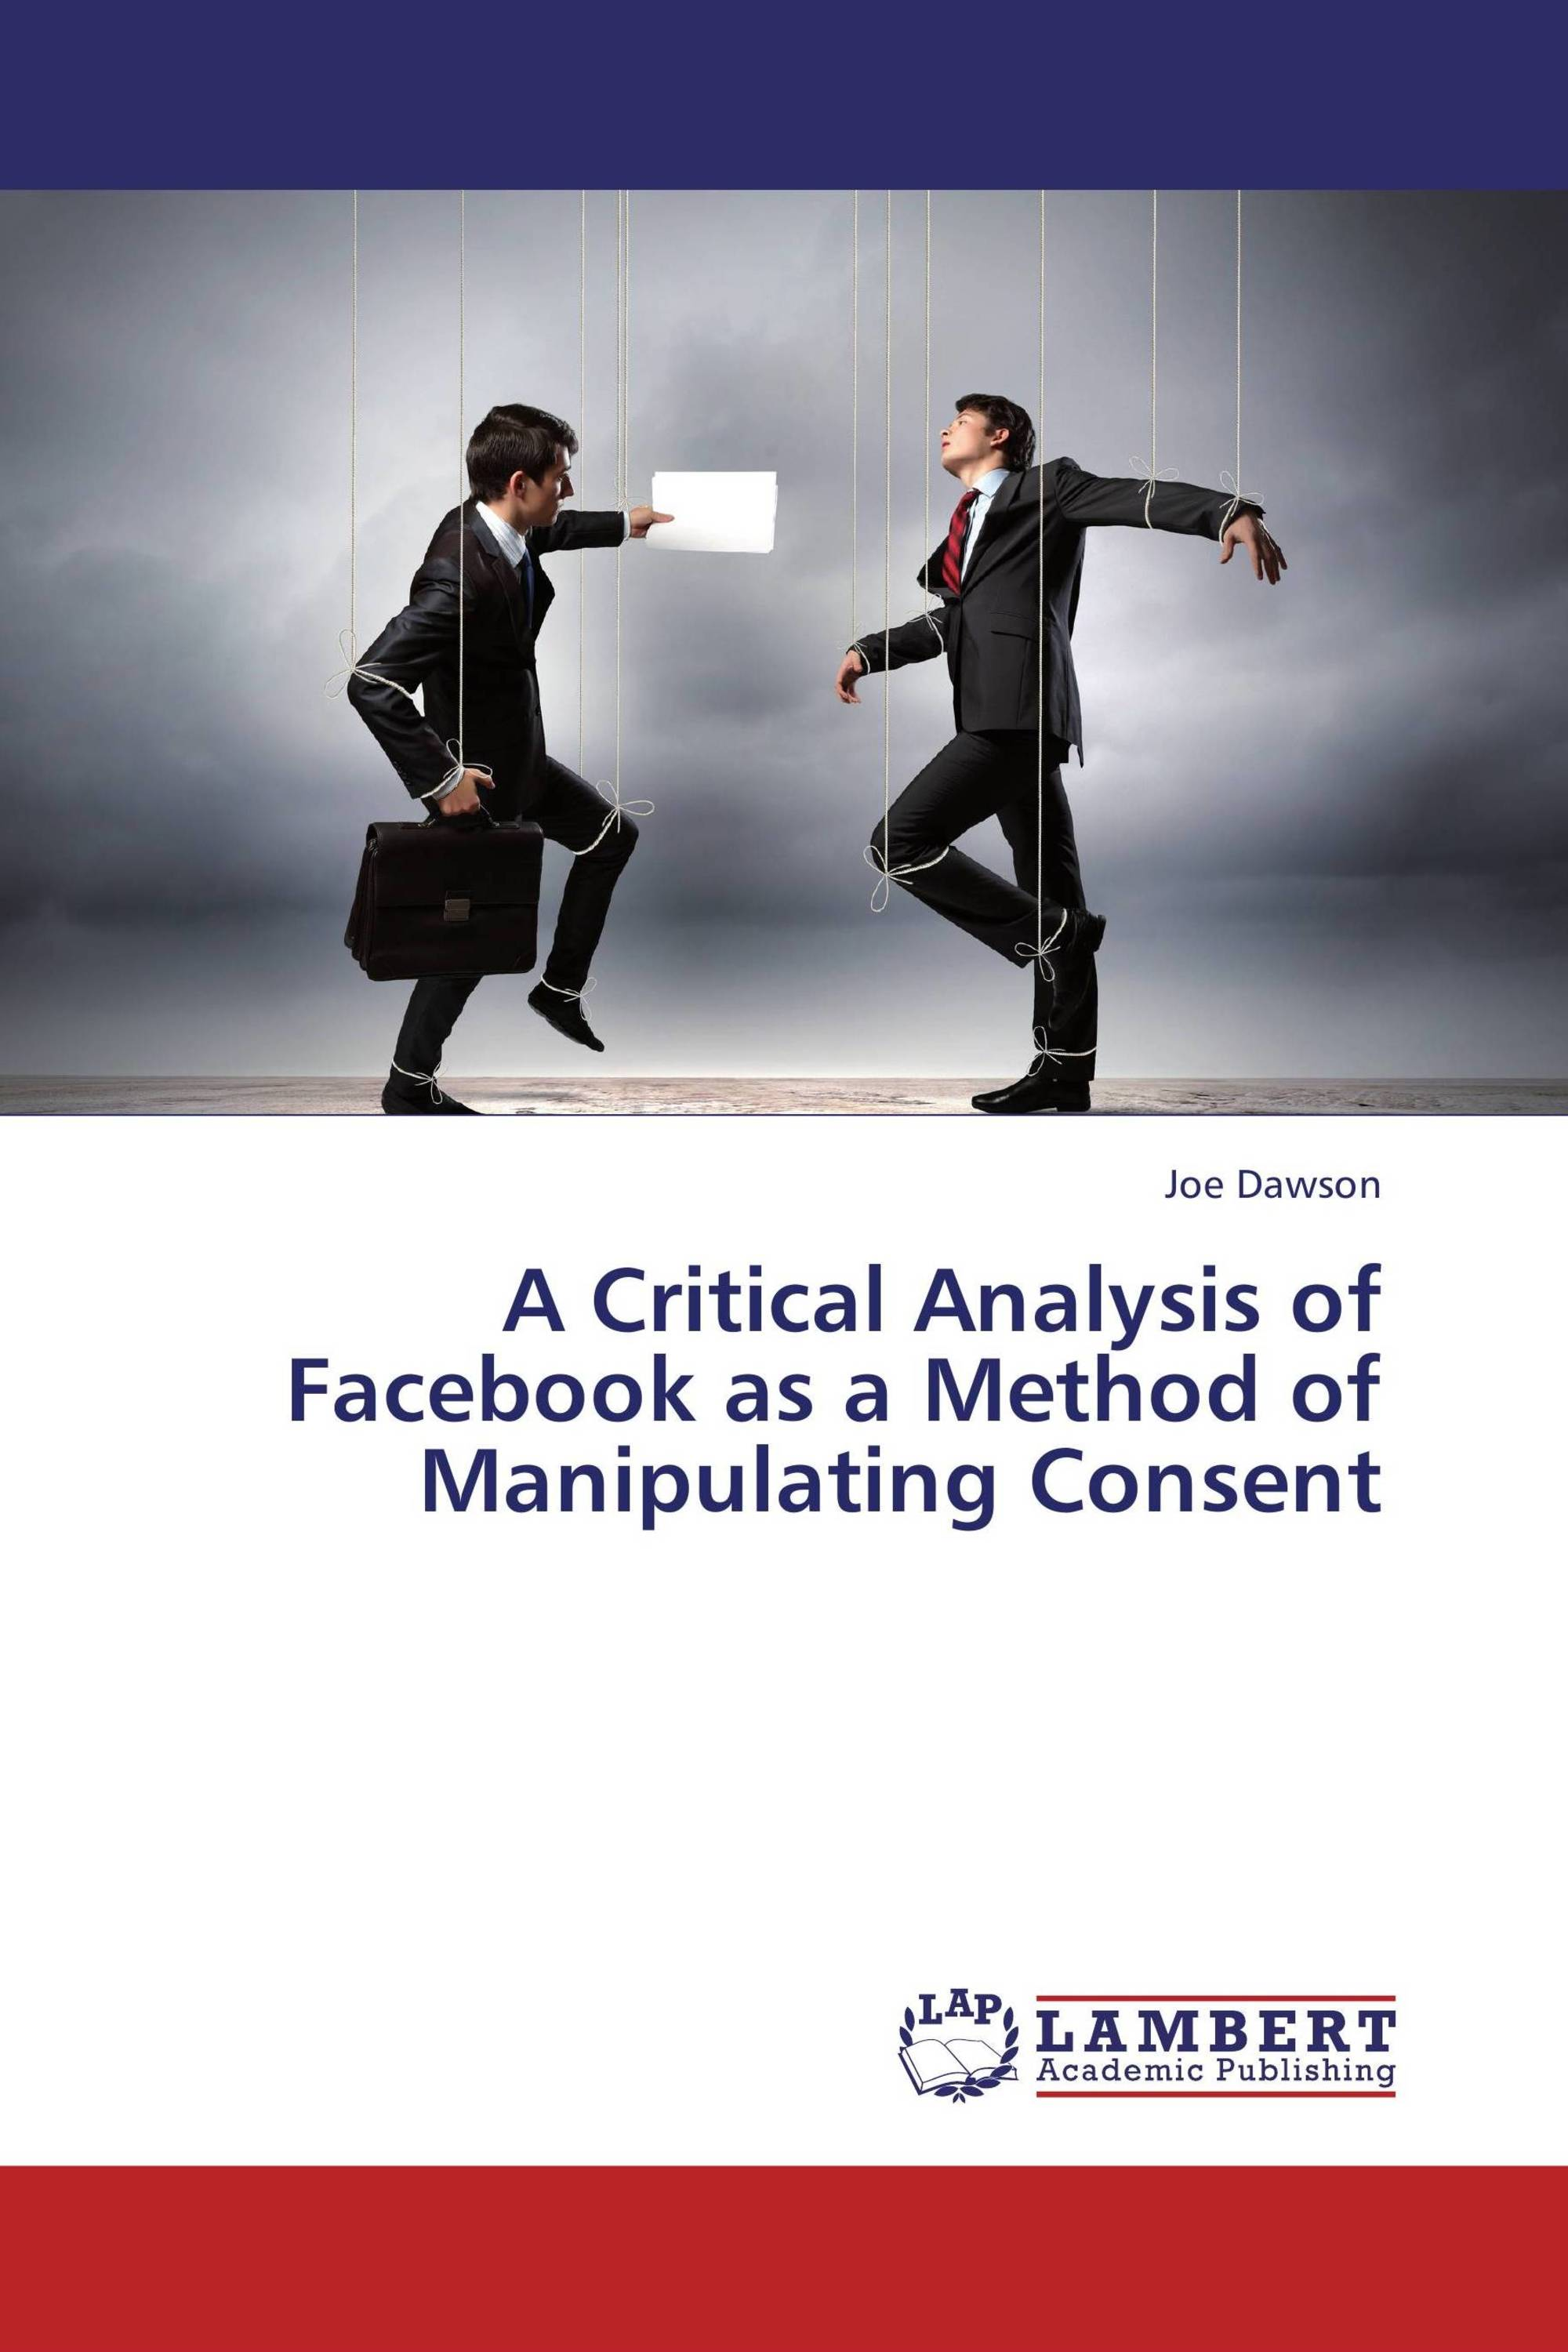 A Critical Analysis of Facebook as a Method of Manipulating Consent